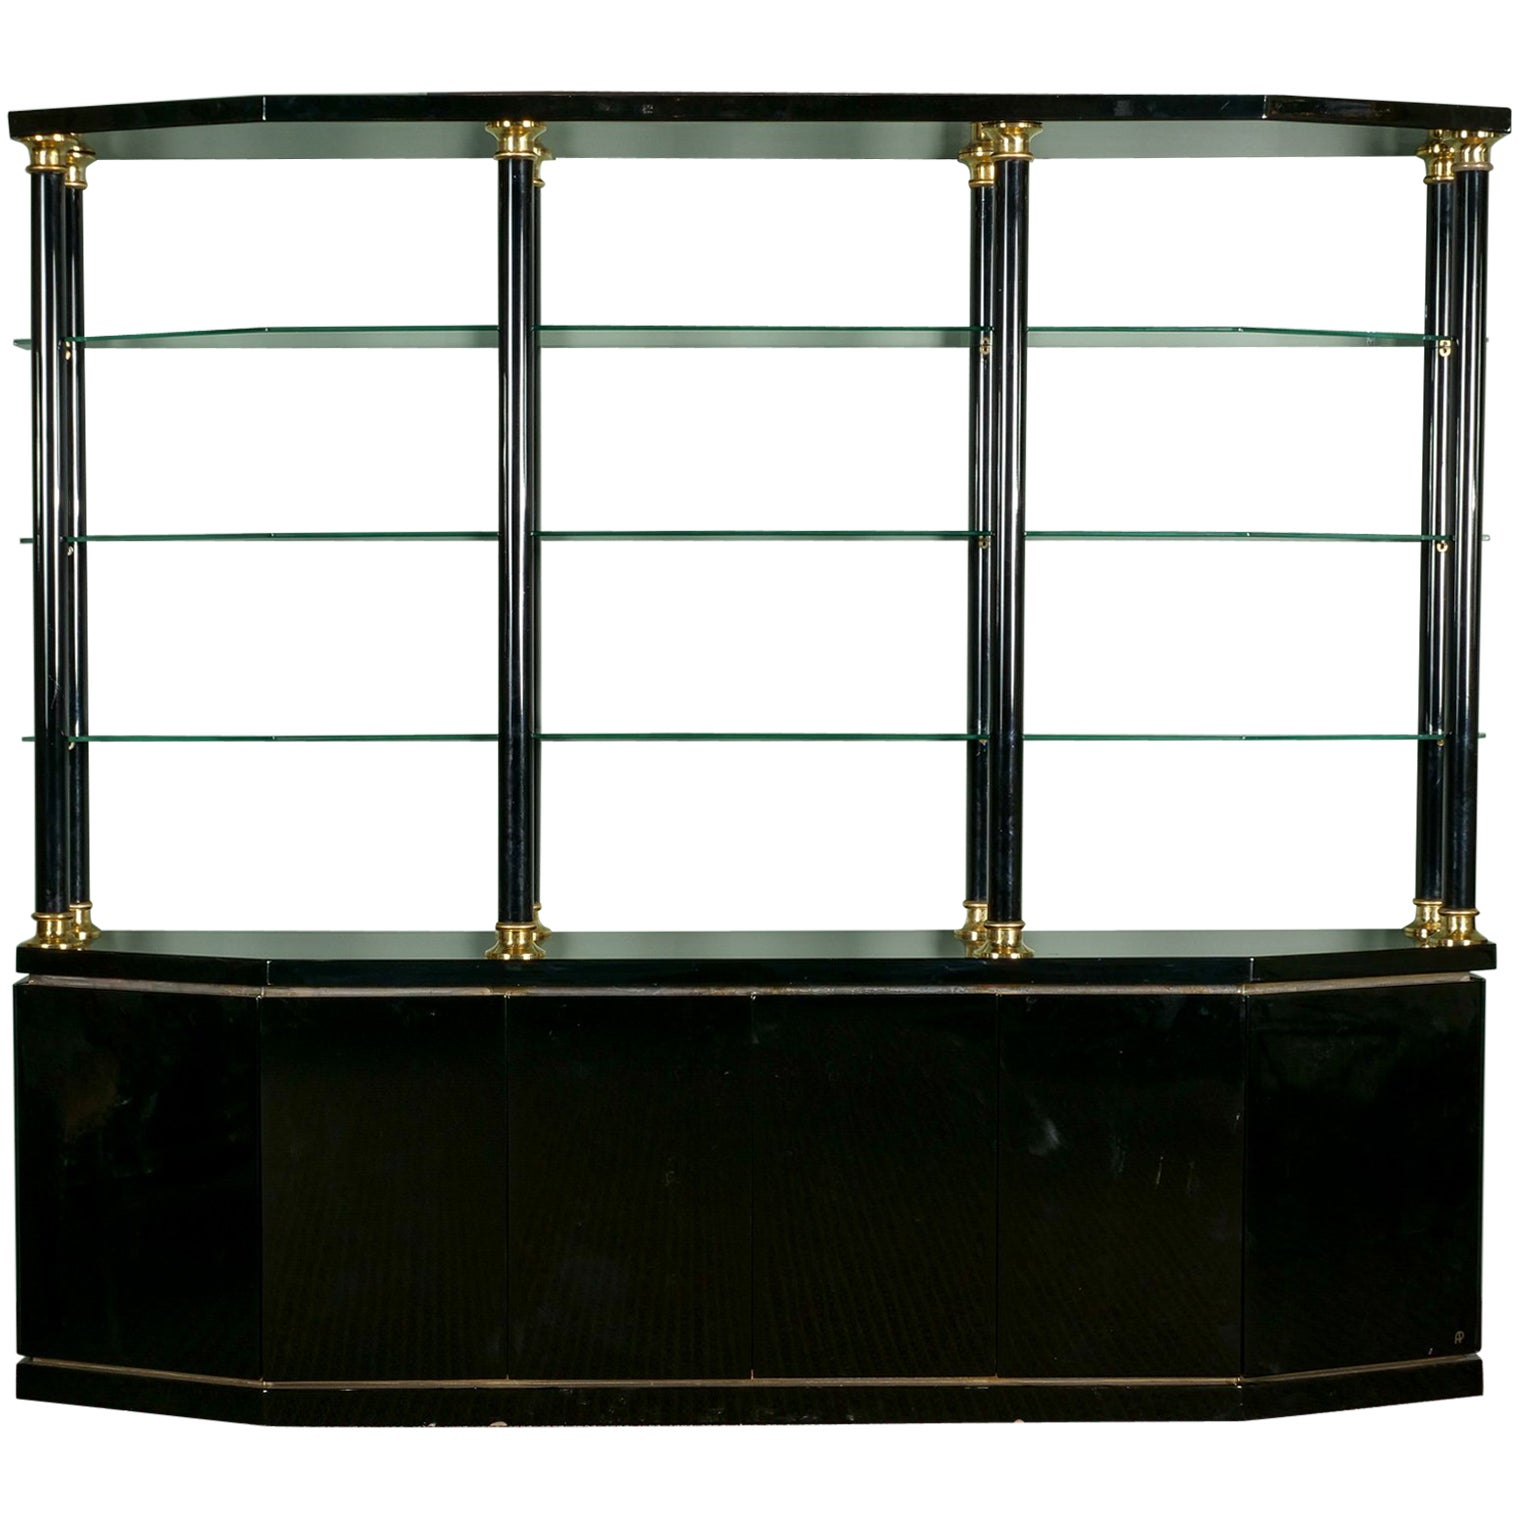 Midcentury Italian Black Lacquer and Brass Wall Unit